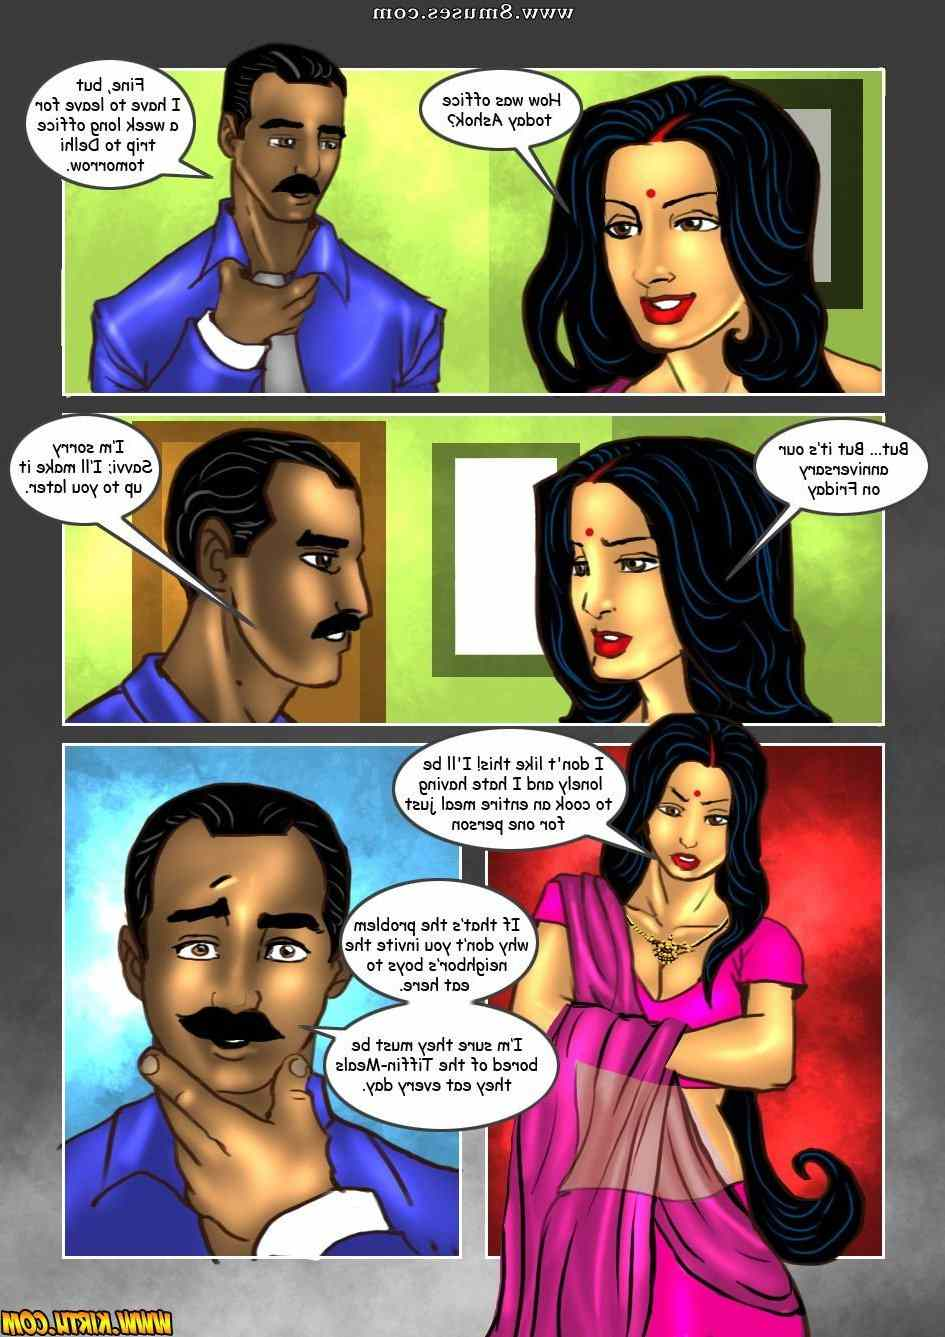 Kirtu_com-Comics/Savita-Bhabhi/Savita-Bhabhi-Episode-17-Double-Trouble-Part-2 Savita_Bhabhi_-_Episode_17__Double_Trouble_Part_2__8muses_-_Sex_and_Porn_Comics_2.jpg